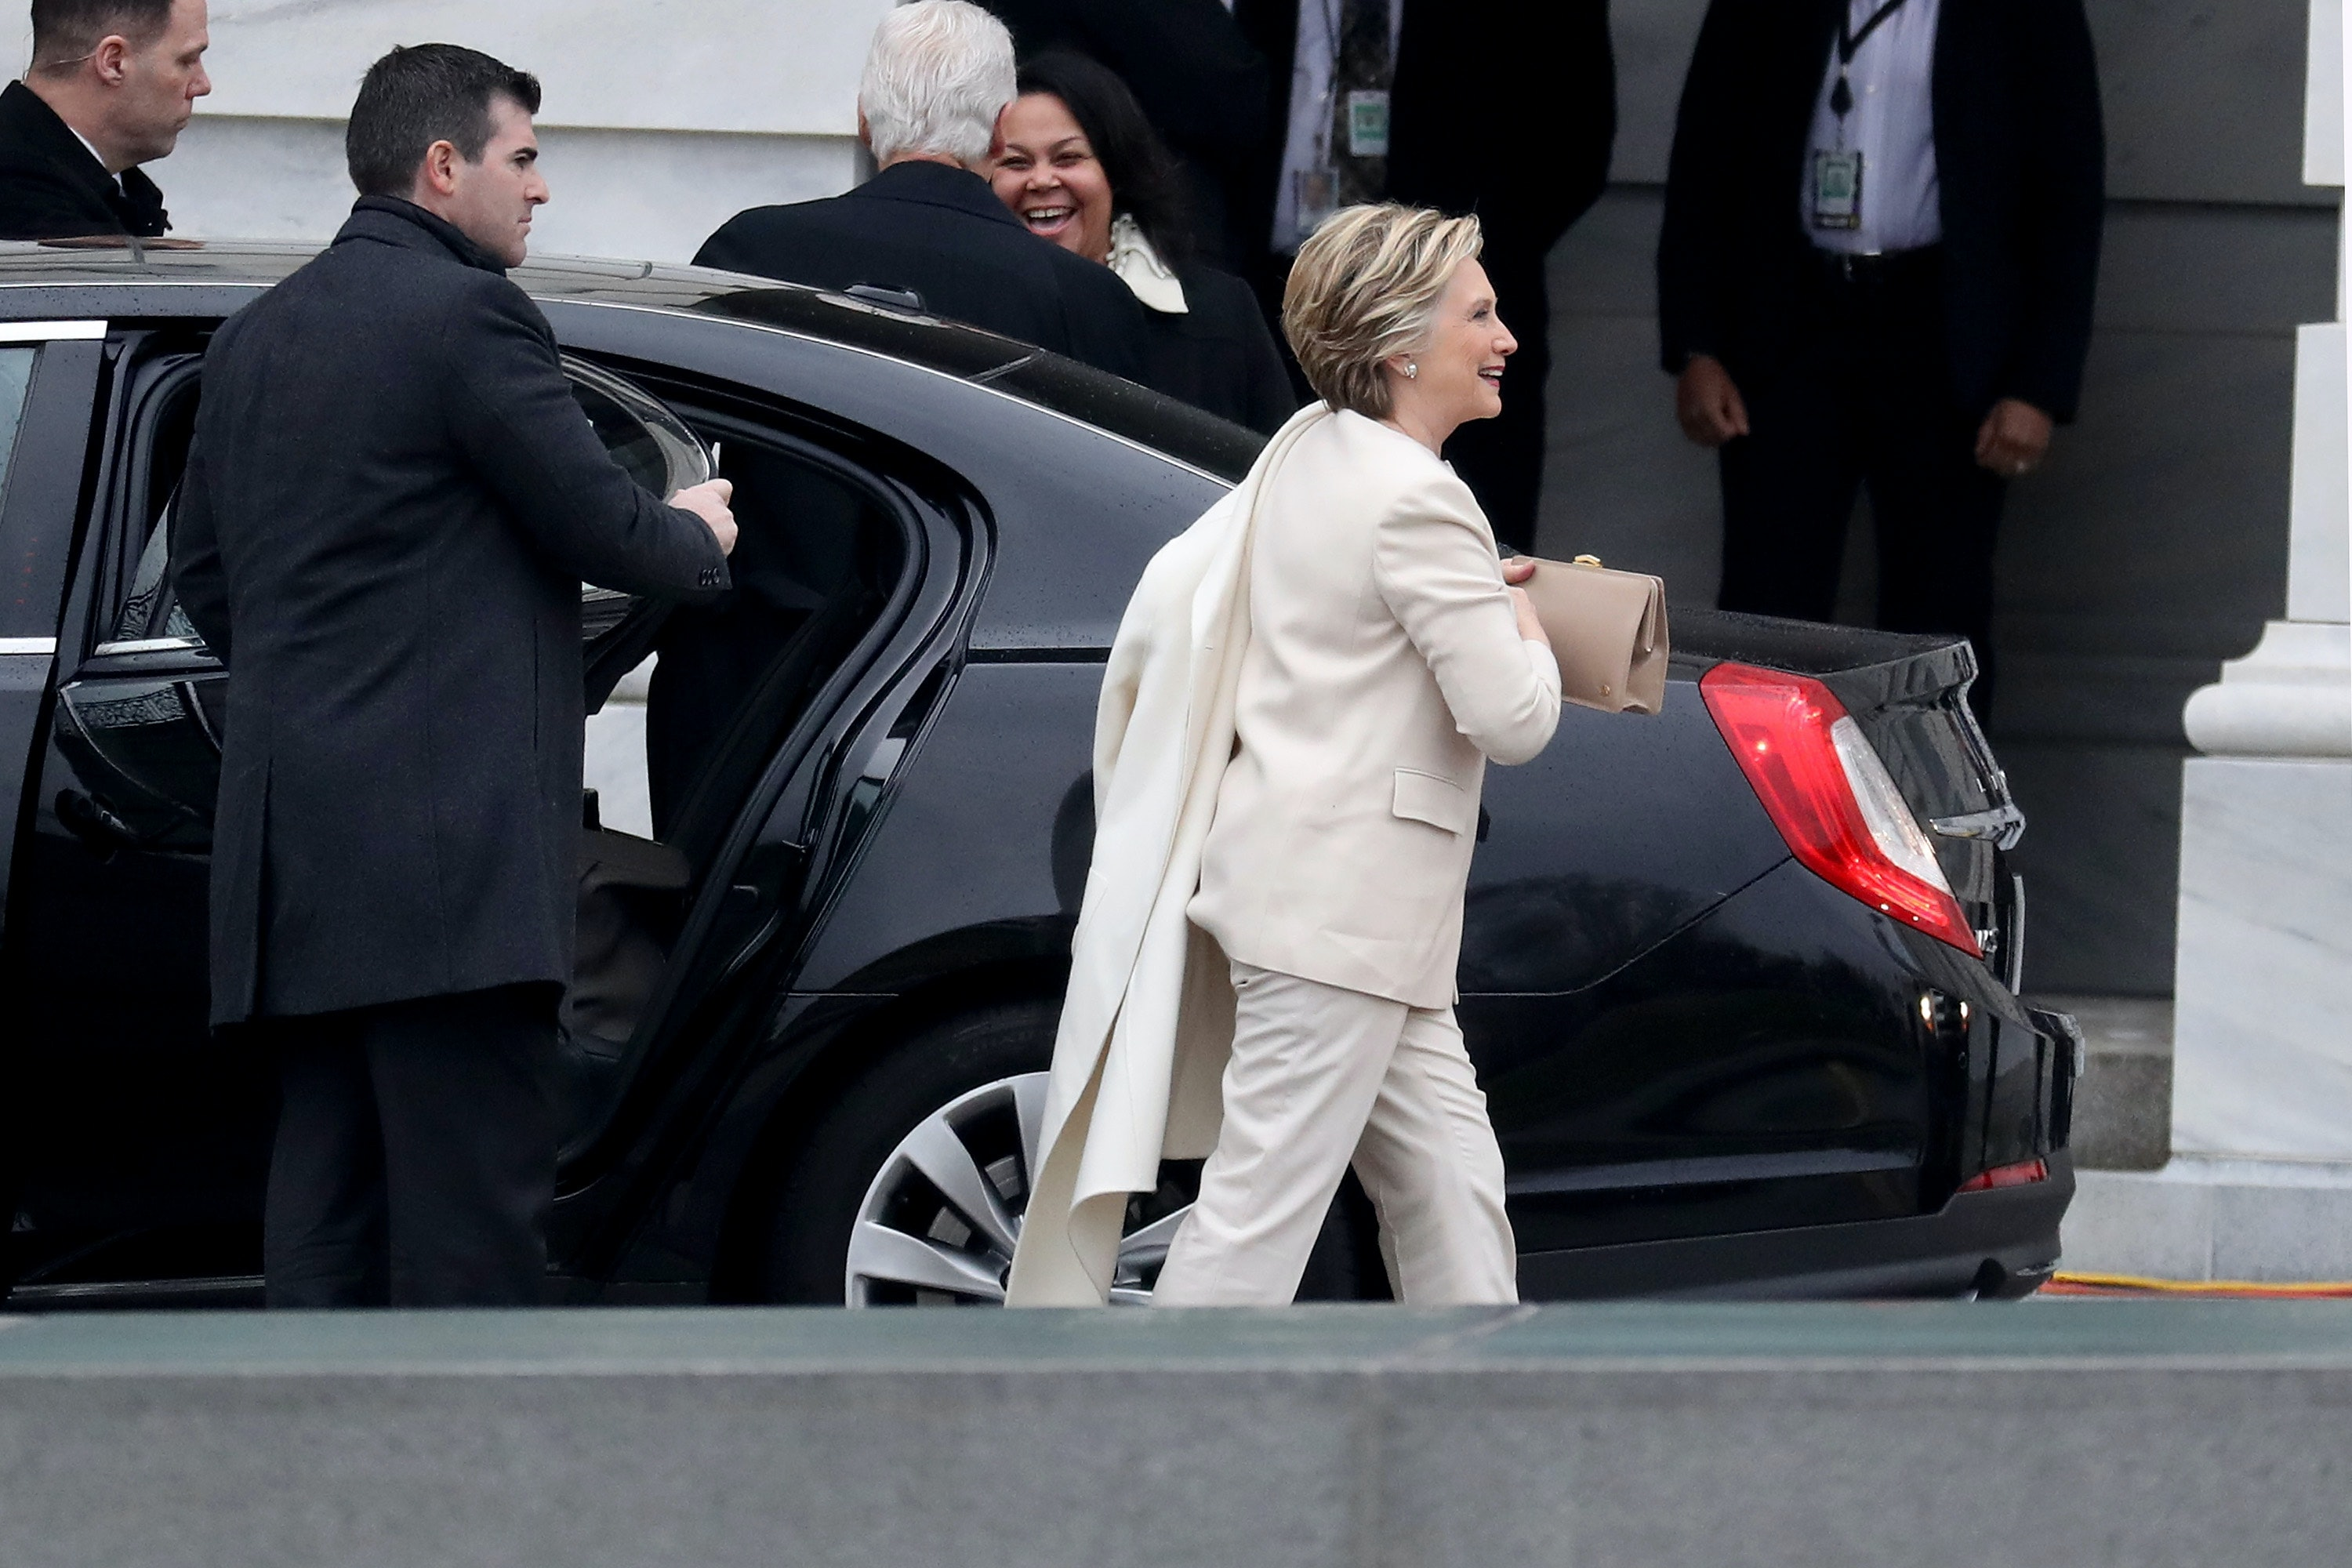 Hillary Clinton's Inauguration Outfit: Looks Beautiful & Chic In White Pantsuit